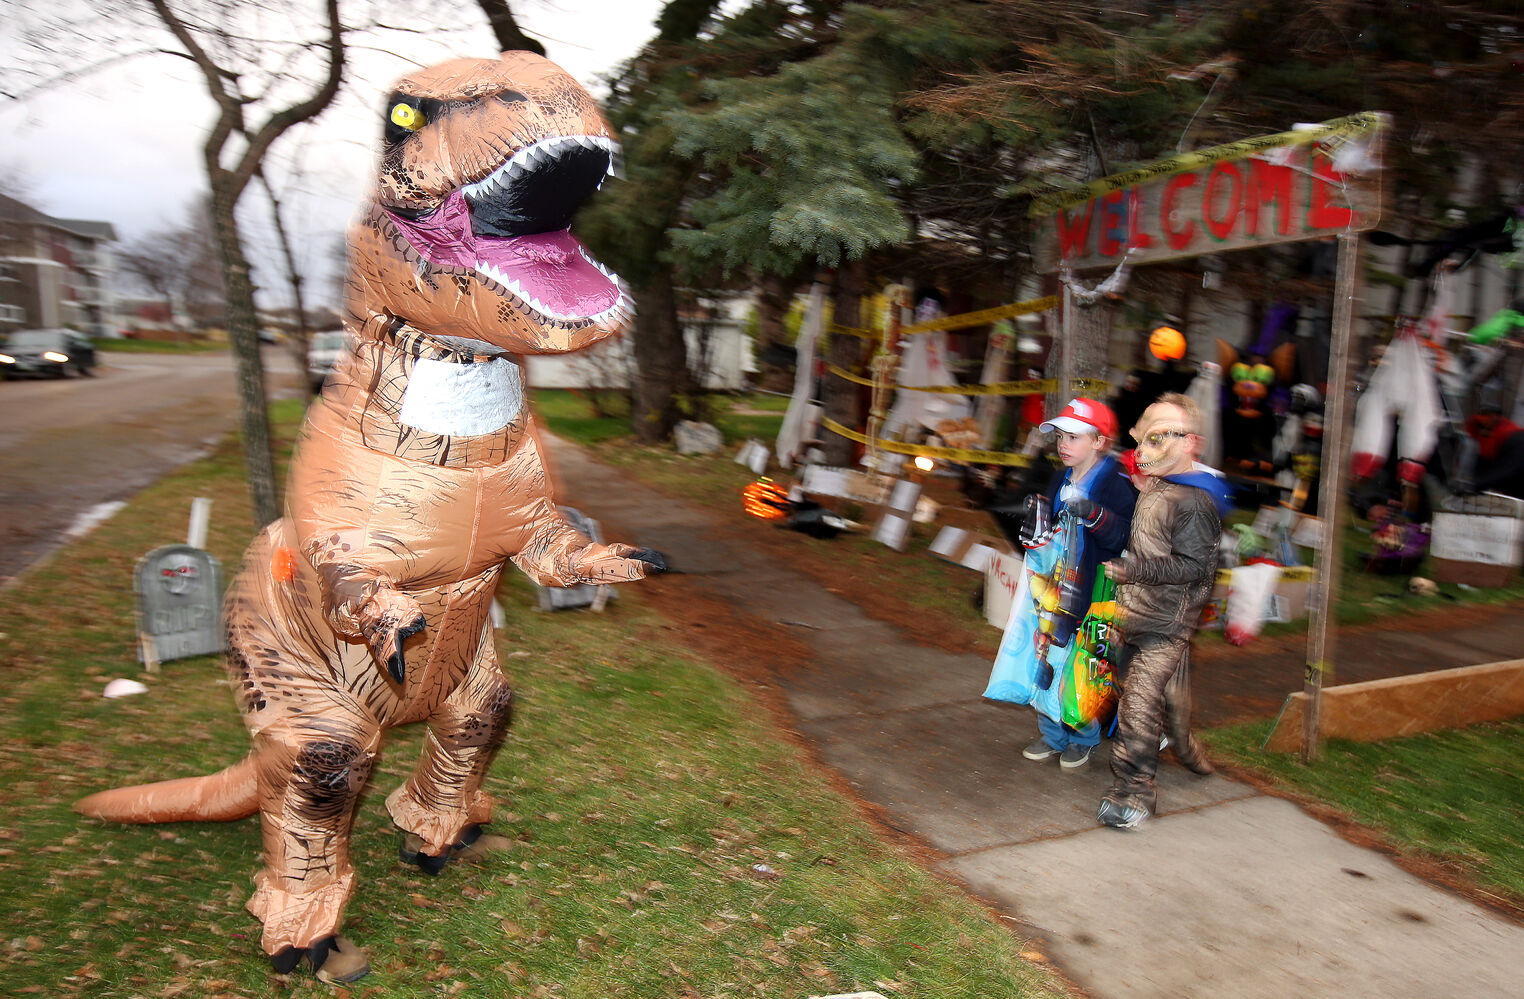 Trick-or-treaters visit the heavily decorated home of Kim and Wally Sawchuk on Fourth Street in Brandon to collect candy with friends on Halloween. (Tim Smith/Brandon Sun)